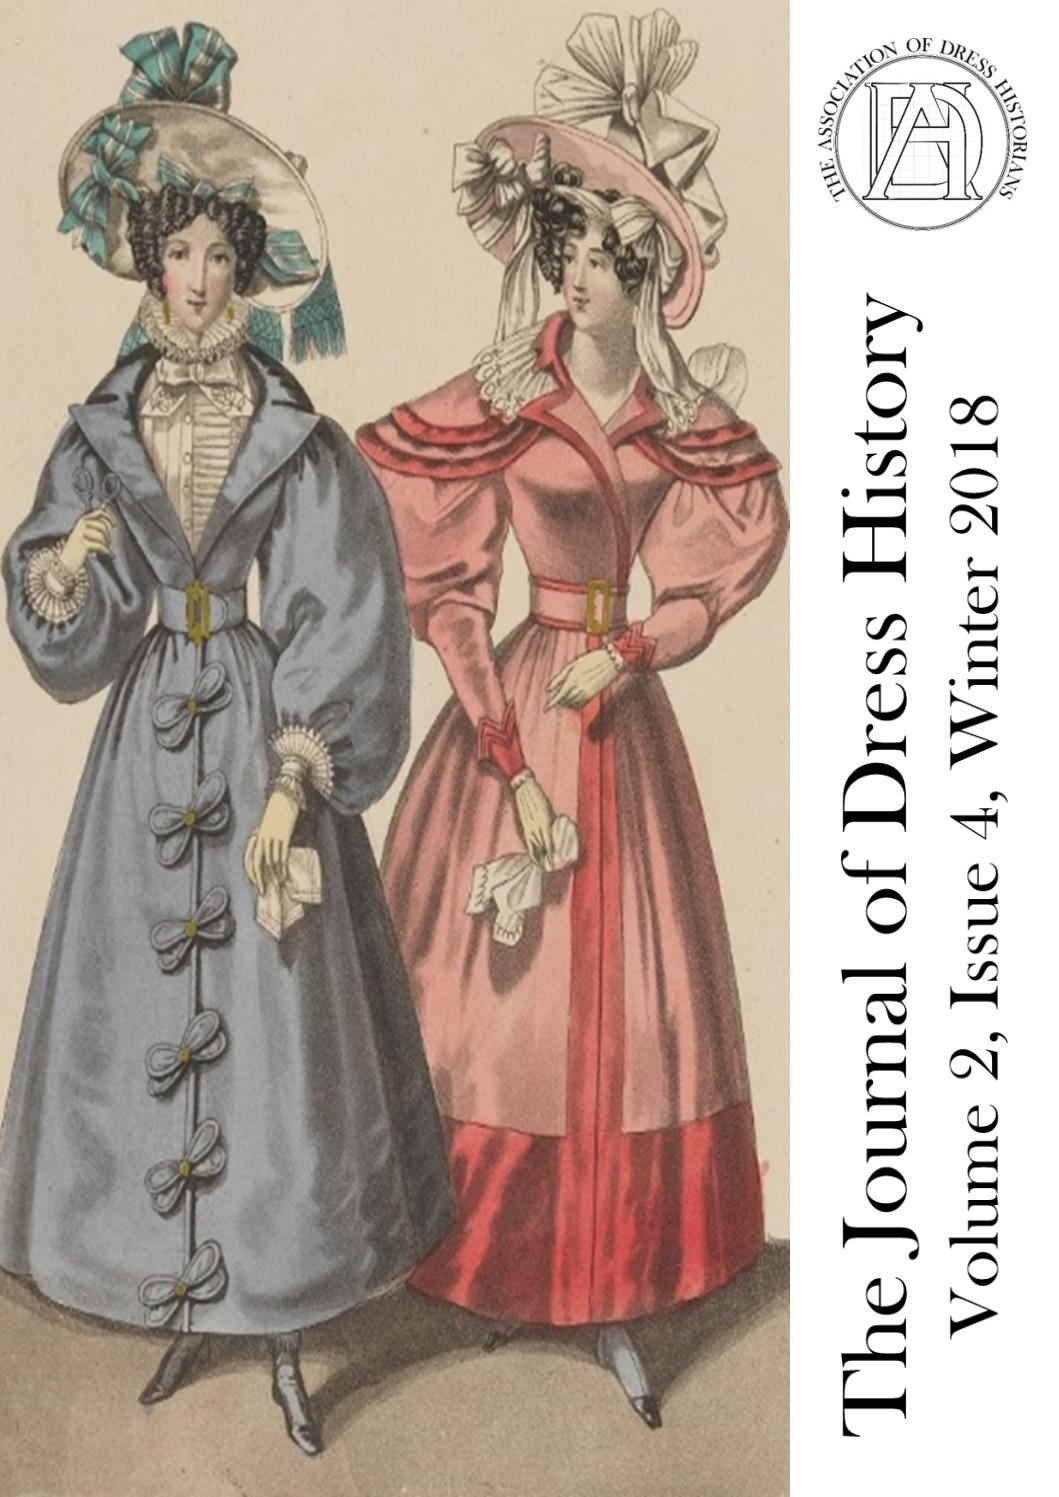 The Journal Of Dress History Volume 2 Issue 4 Winter 2018 By The Journal Of Dress History Issuu